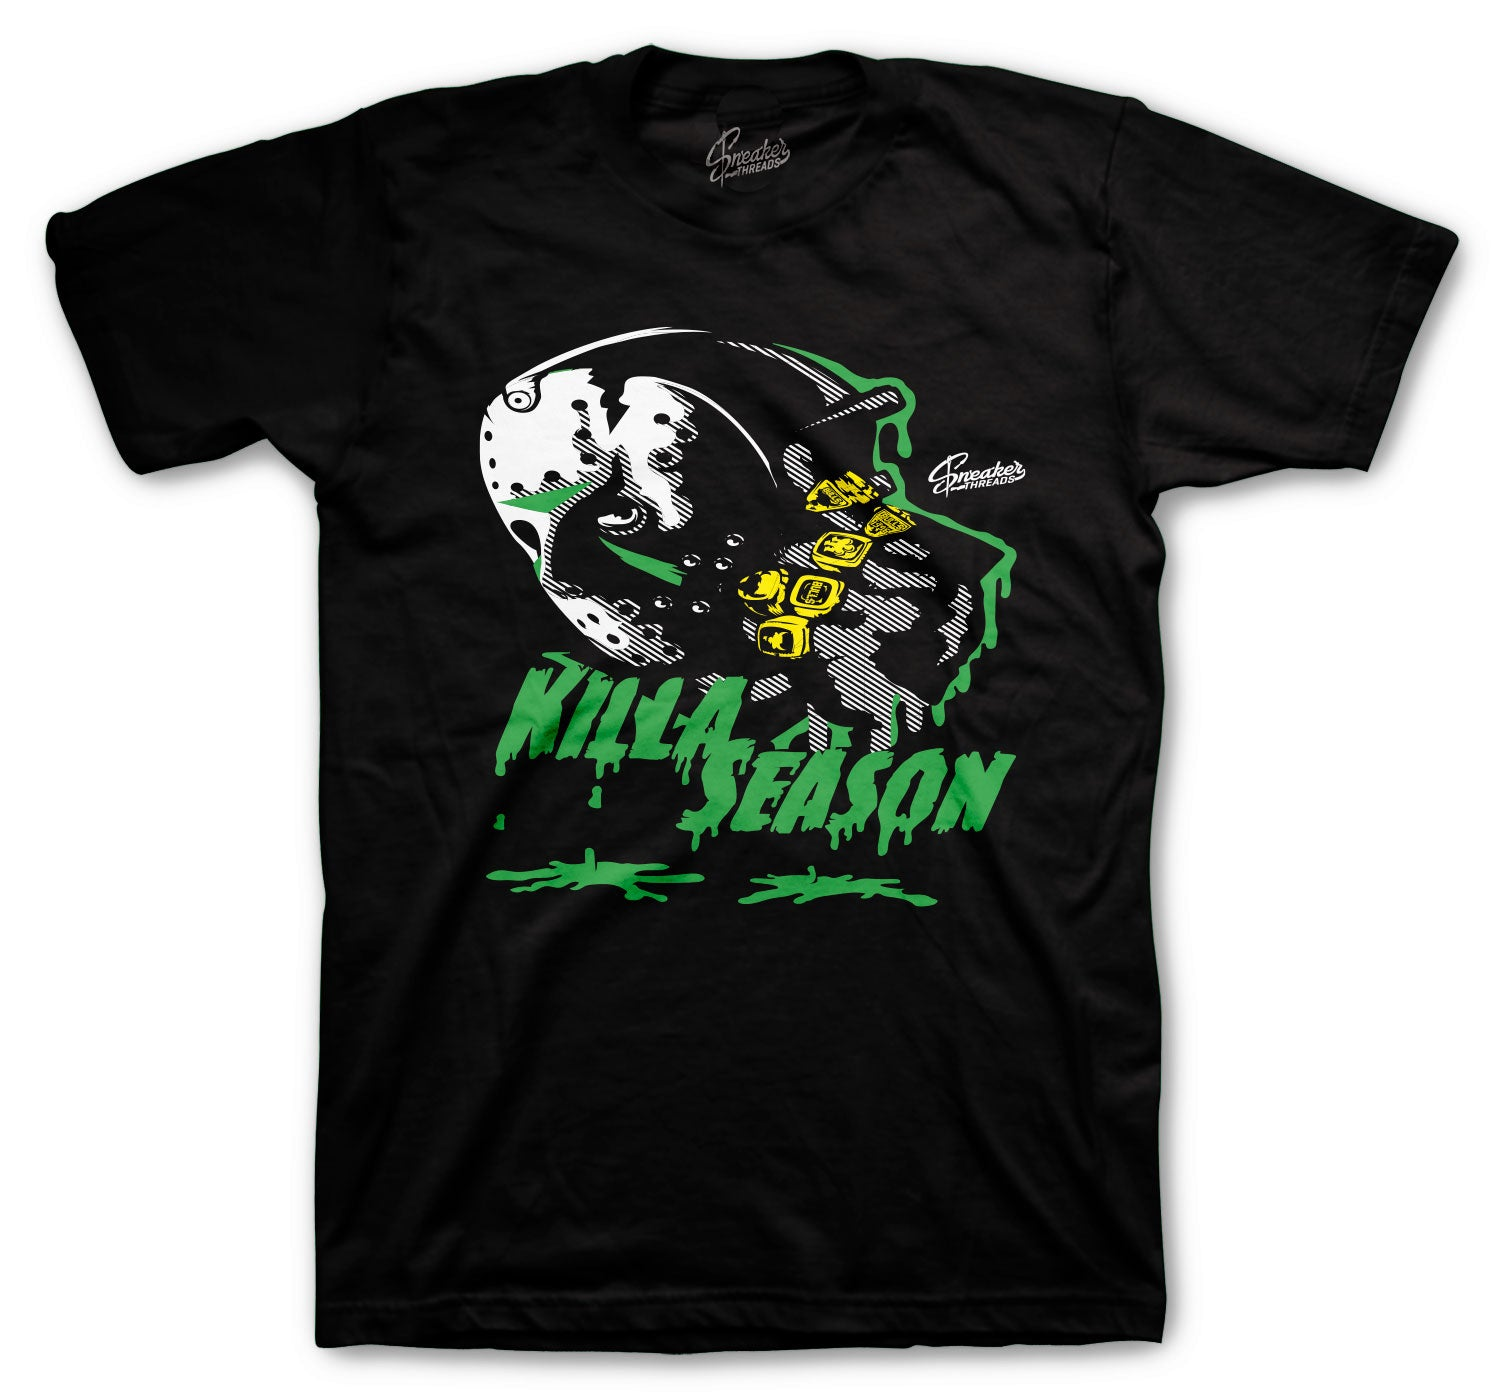 Jordan 5 Oregon Shirt - Killa Season - Black